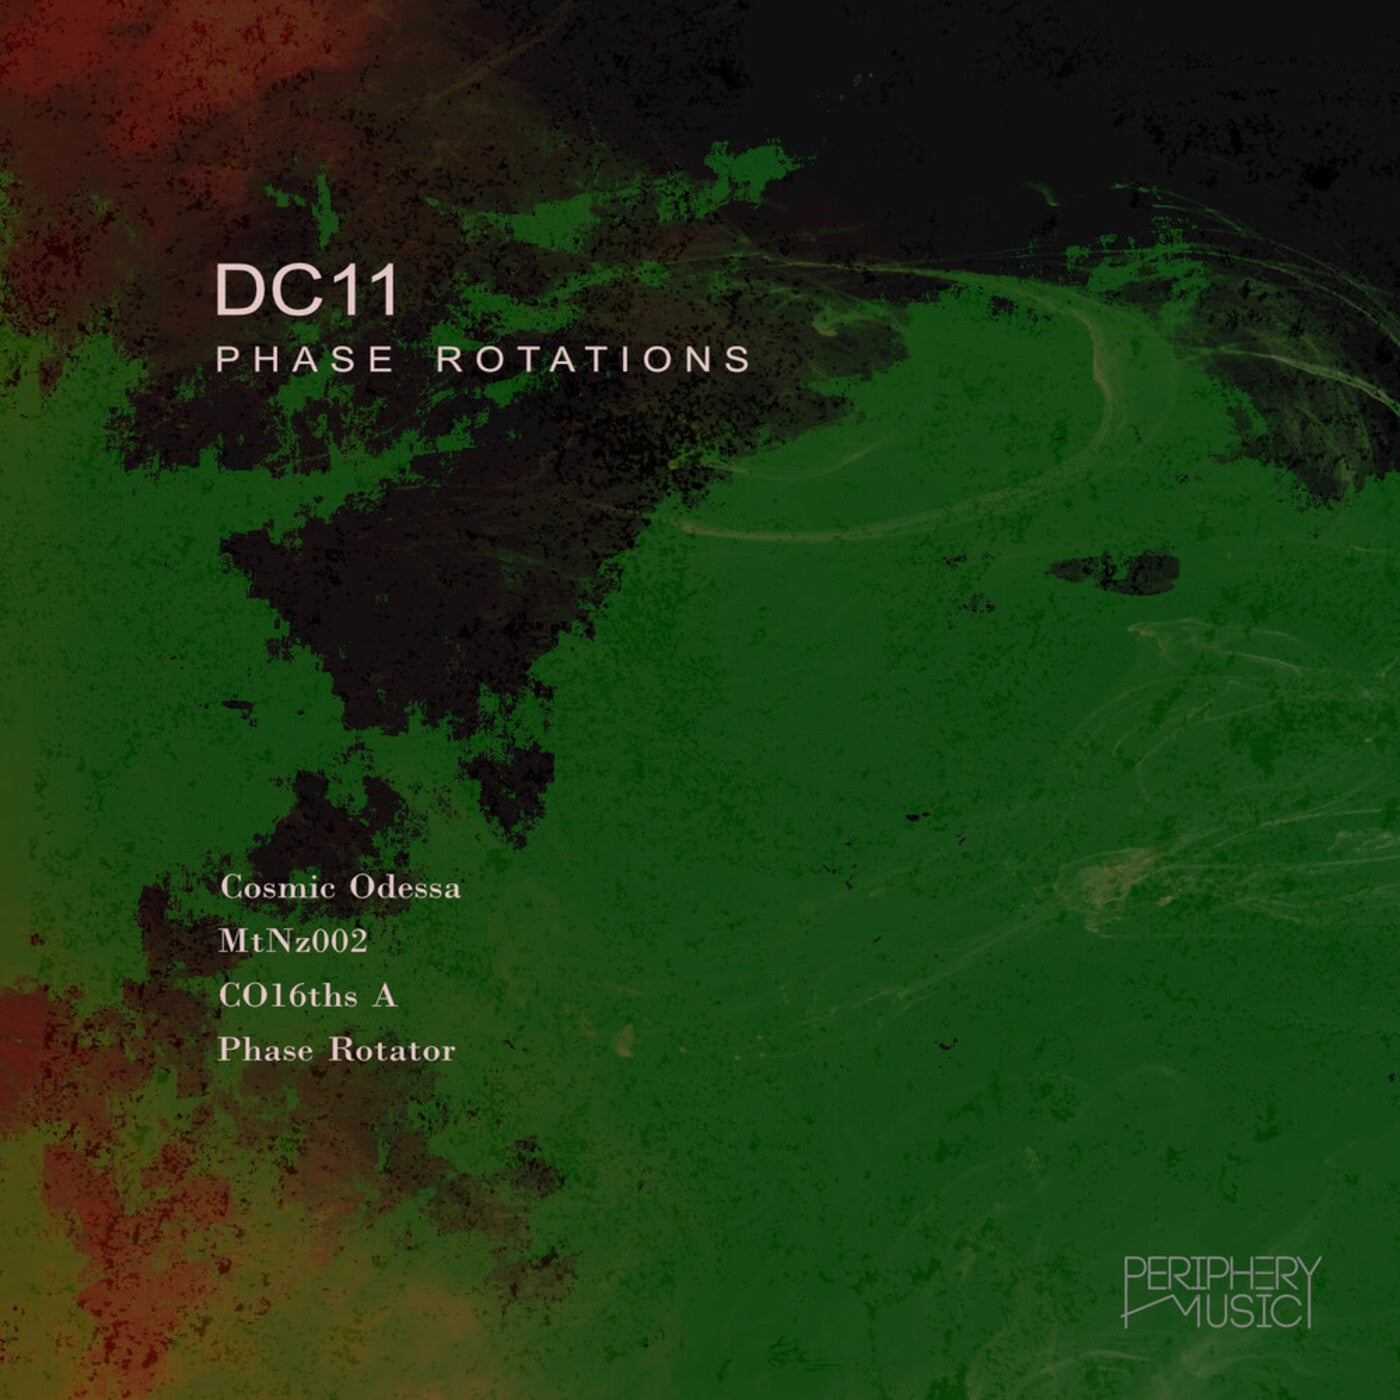 dc11 - Phase Rotations (2021)